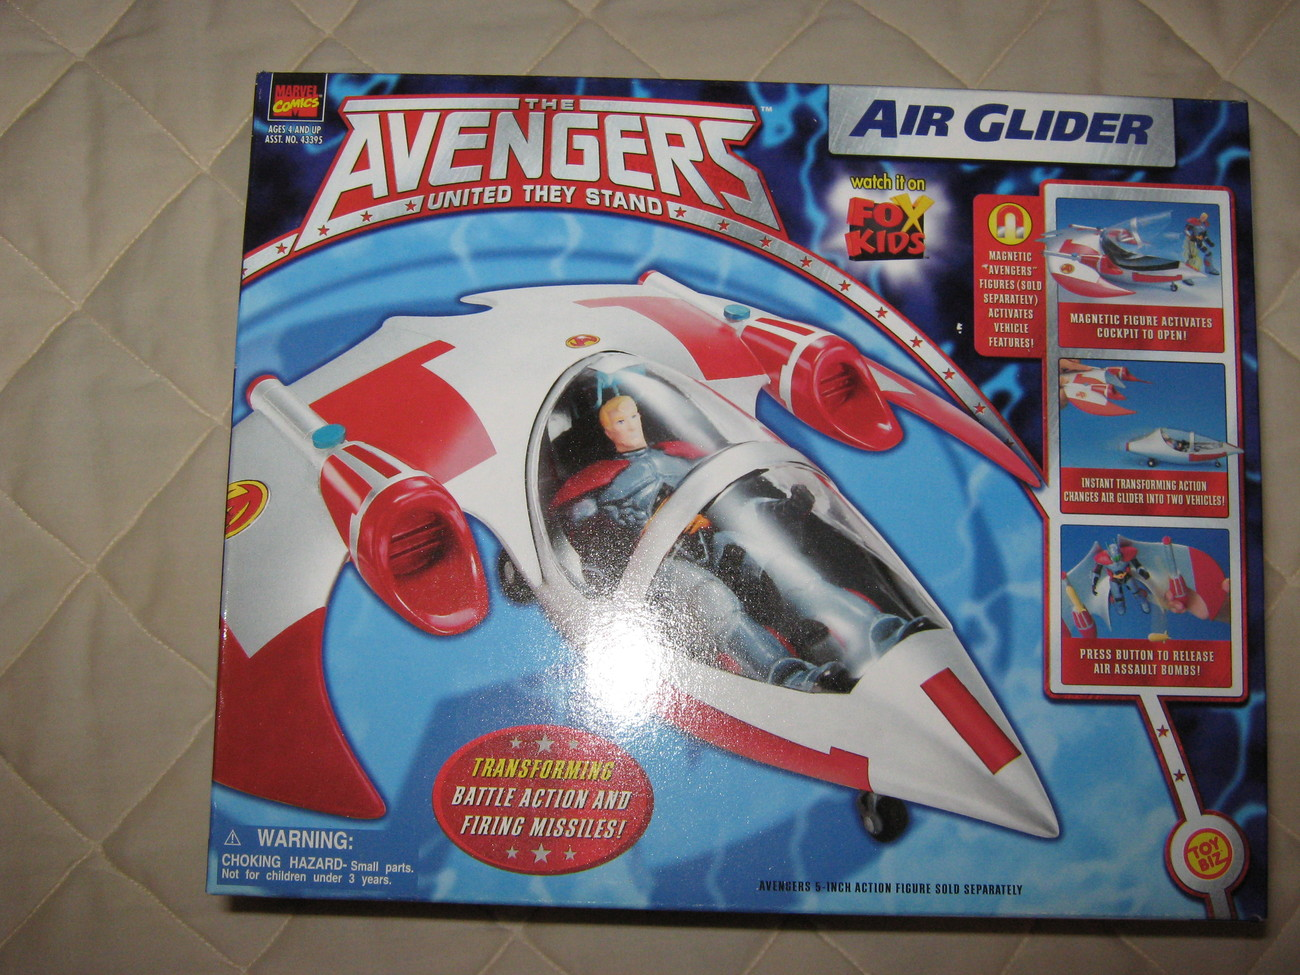 The Avengers United they Stand Air Glider